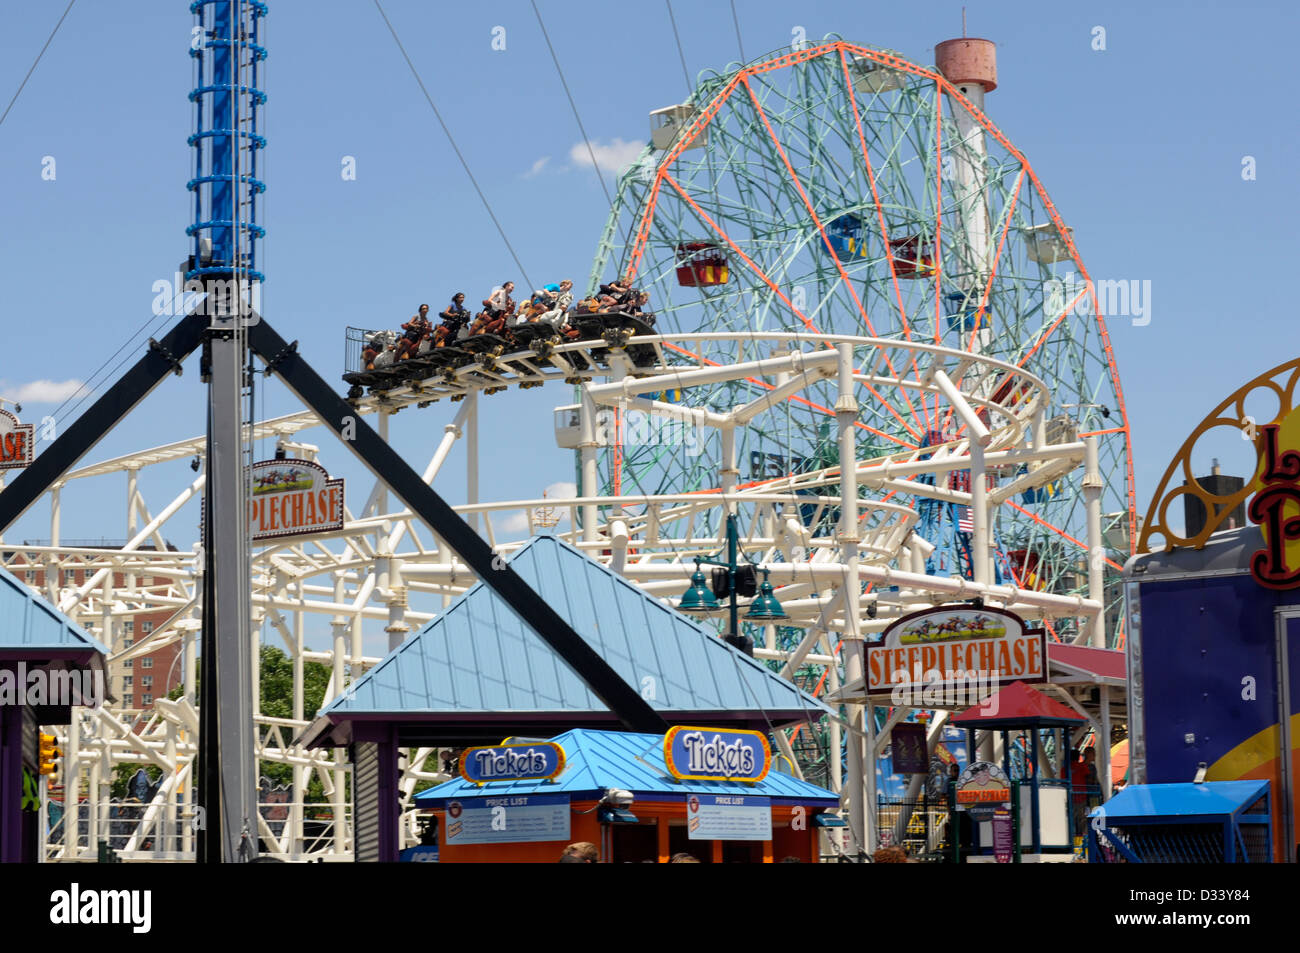 People enjoy the exuberance of the thrill of the fun fair rides at Coney Island, New York City. Stock Photo